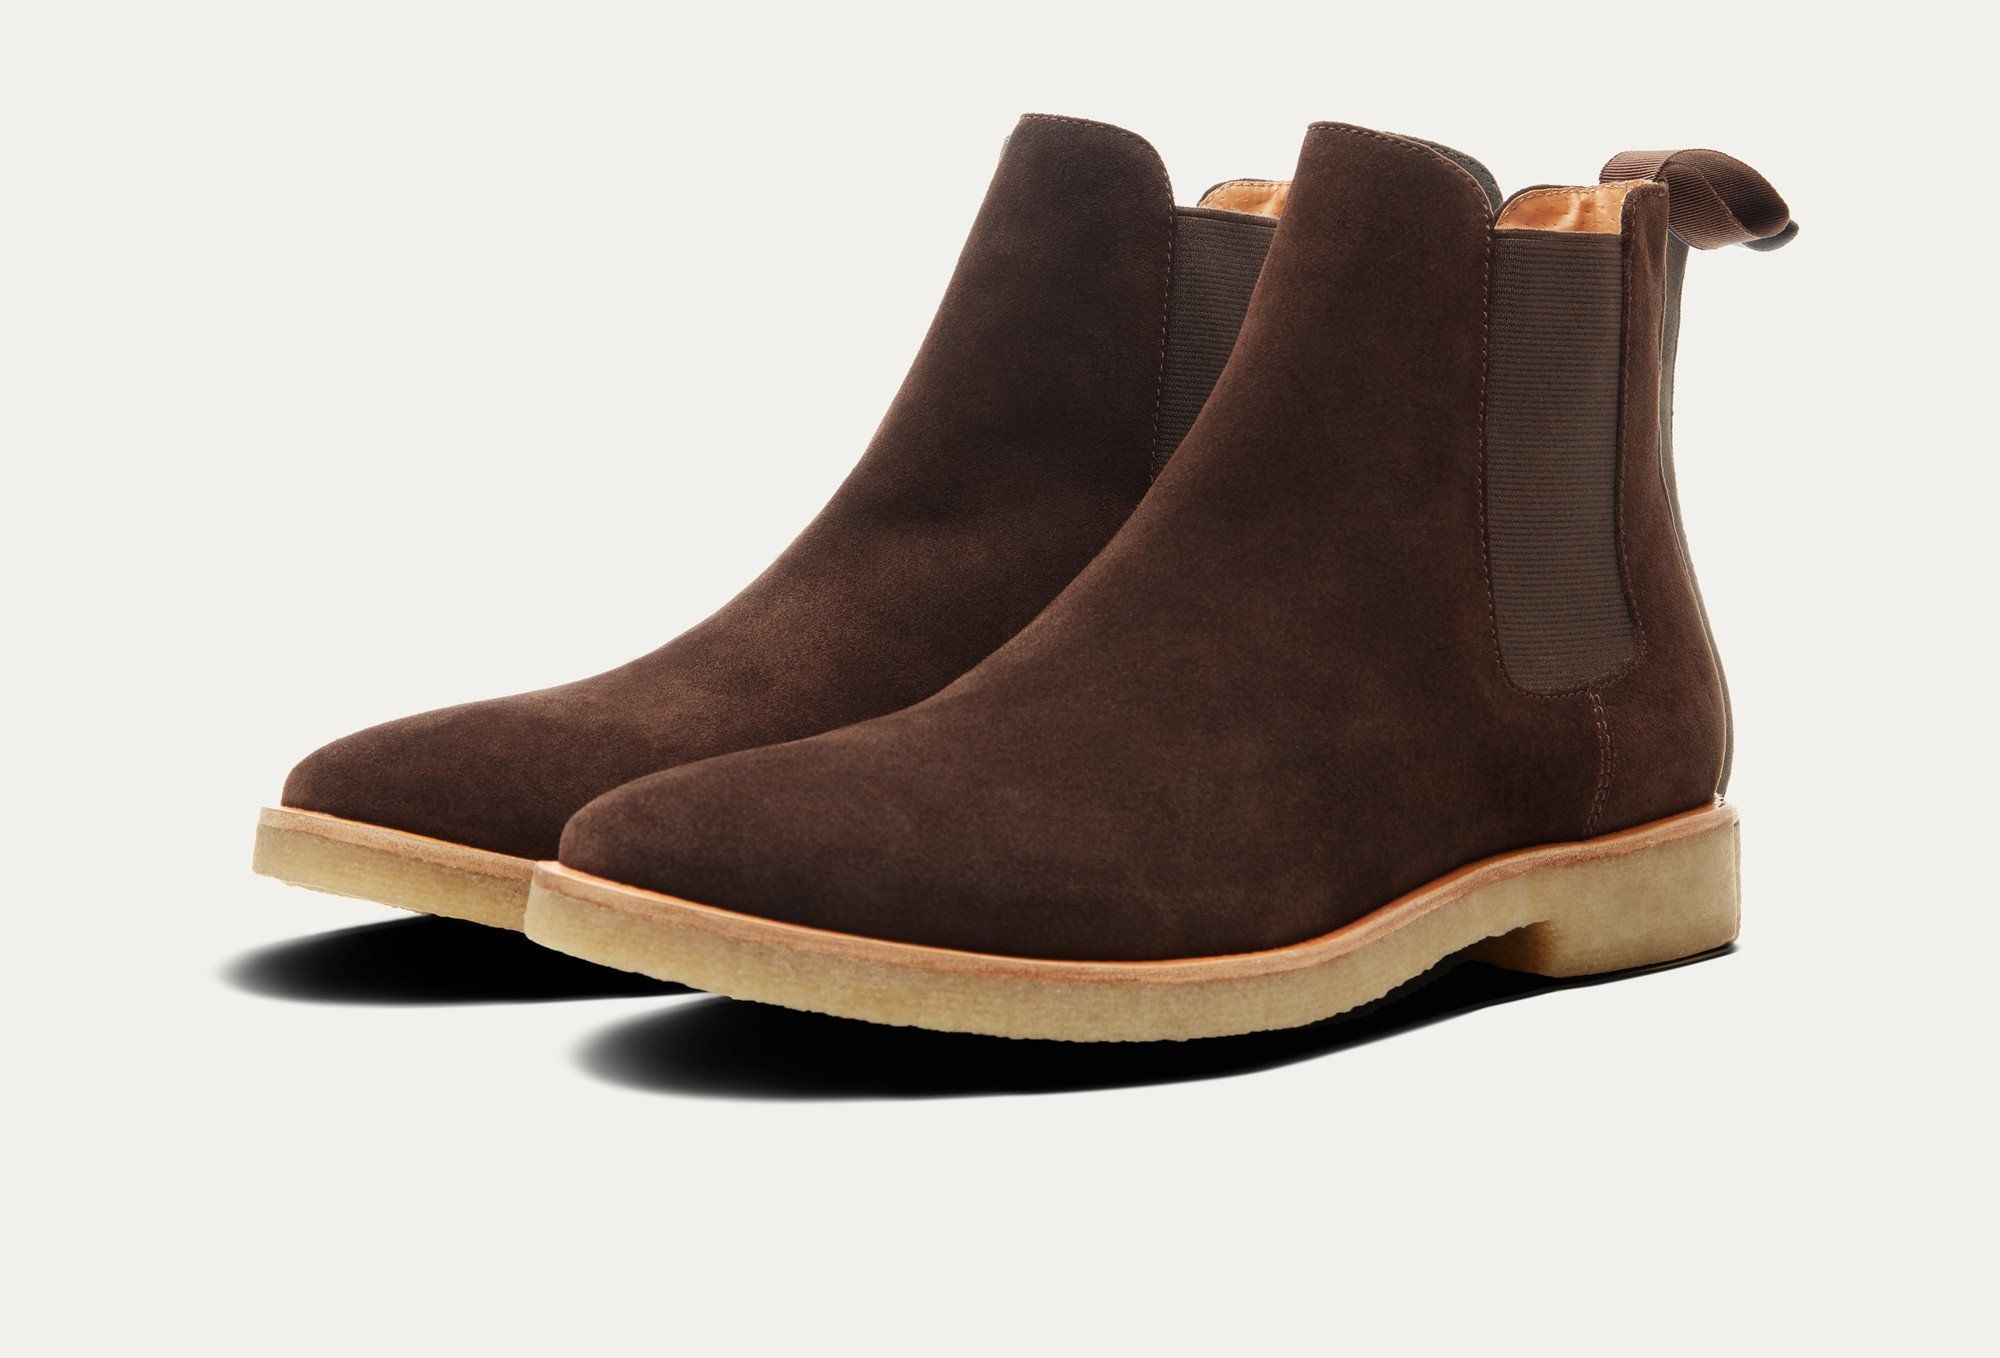 c35993154a5 Houston Suede Chelsea Boot in 2019 | Kicks & Giggles | Suede chelsea ...